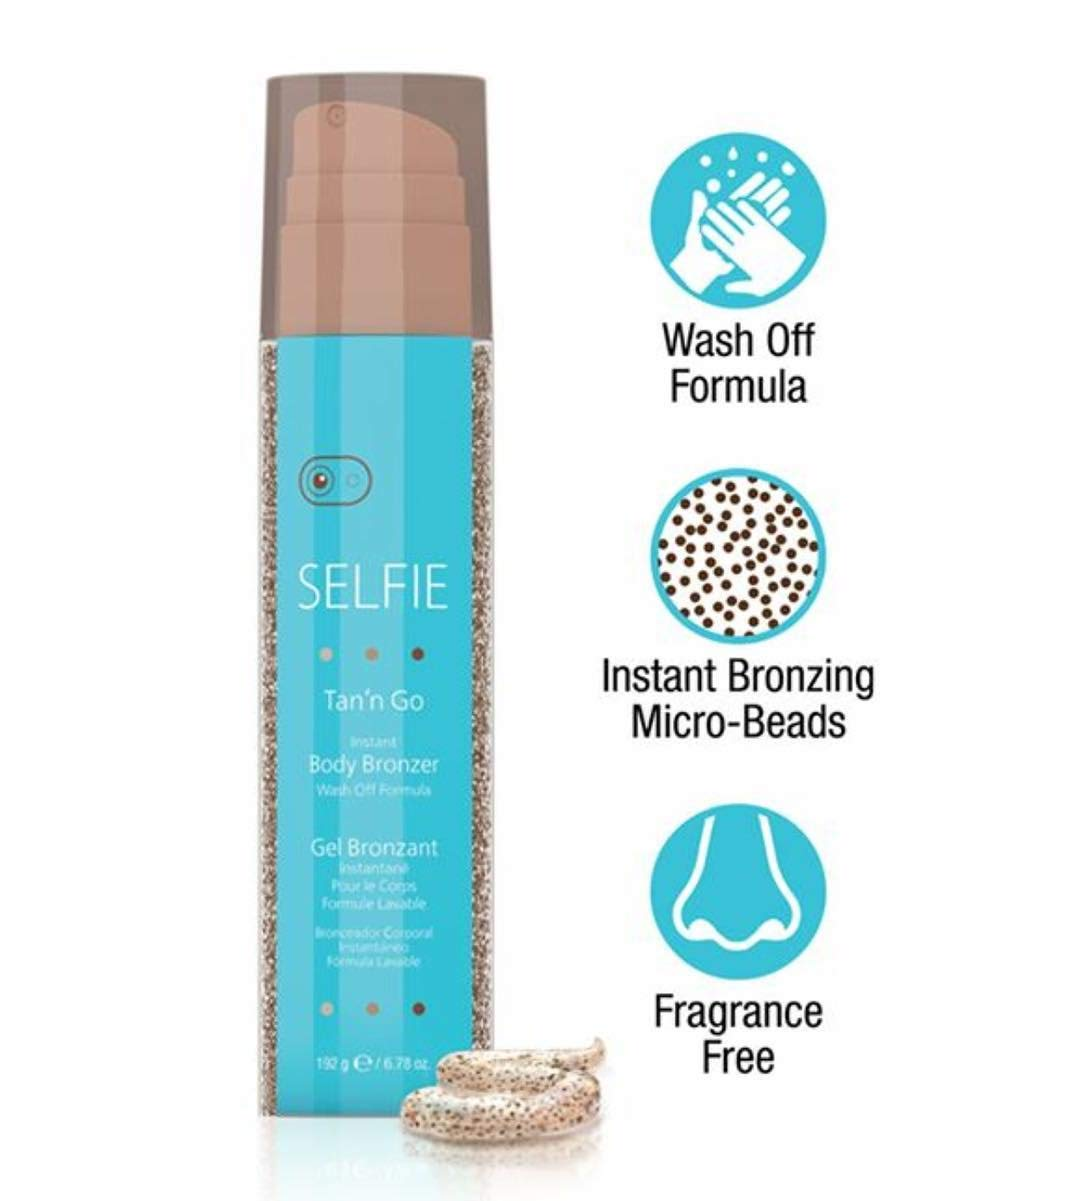 Selfie Tan'n Go Instant Body Bronzer with Wash Off Formula - Sunless self tanner (Medium Tan) rich,  Exotic natural looking fragrance-free tan for head to toe for  all skin types, 6.7 oz by Selfie (Image #4)